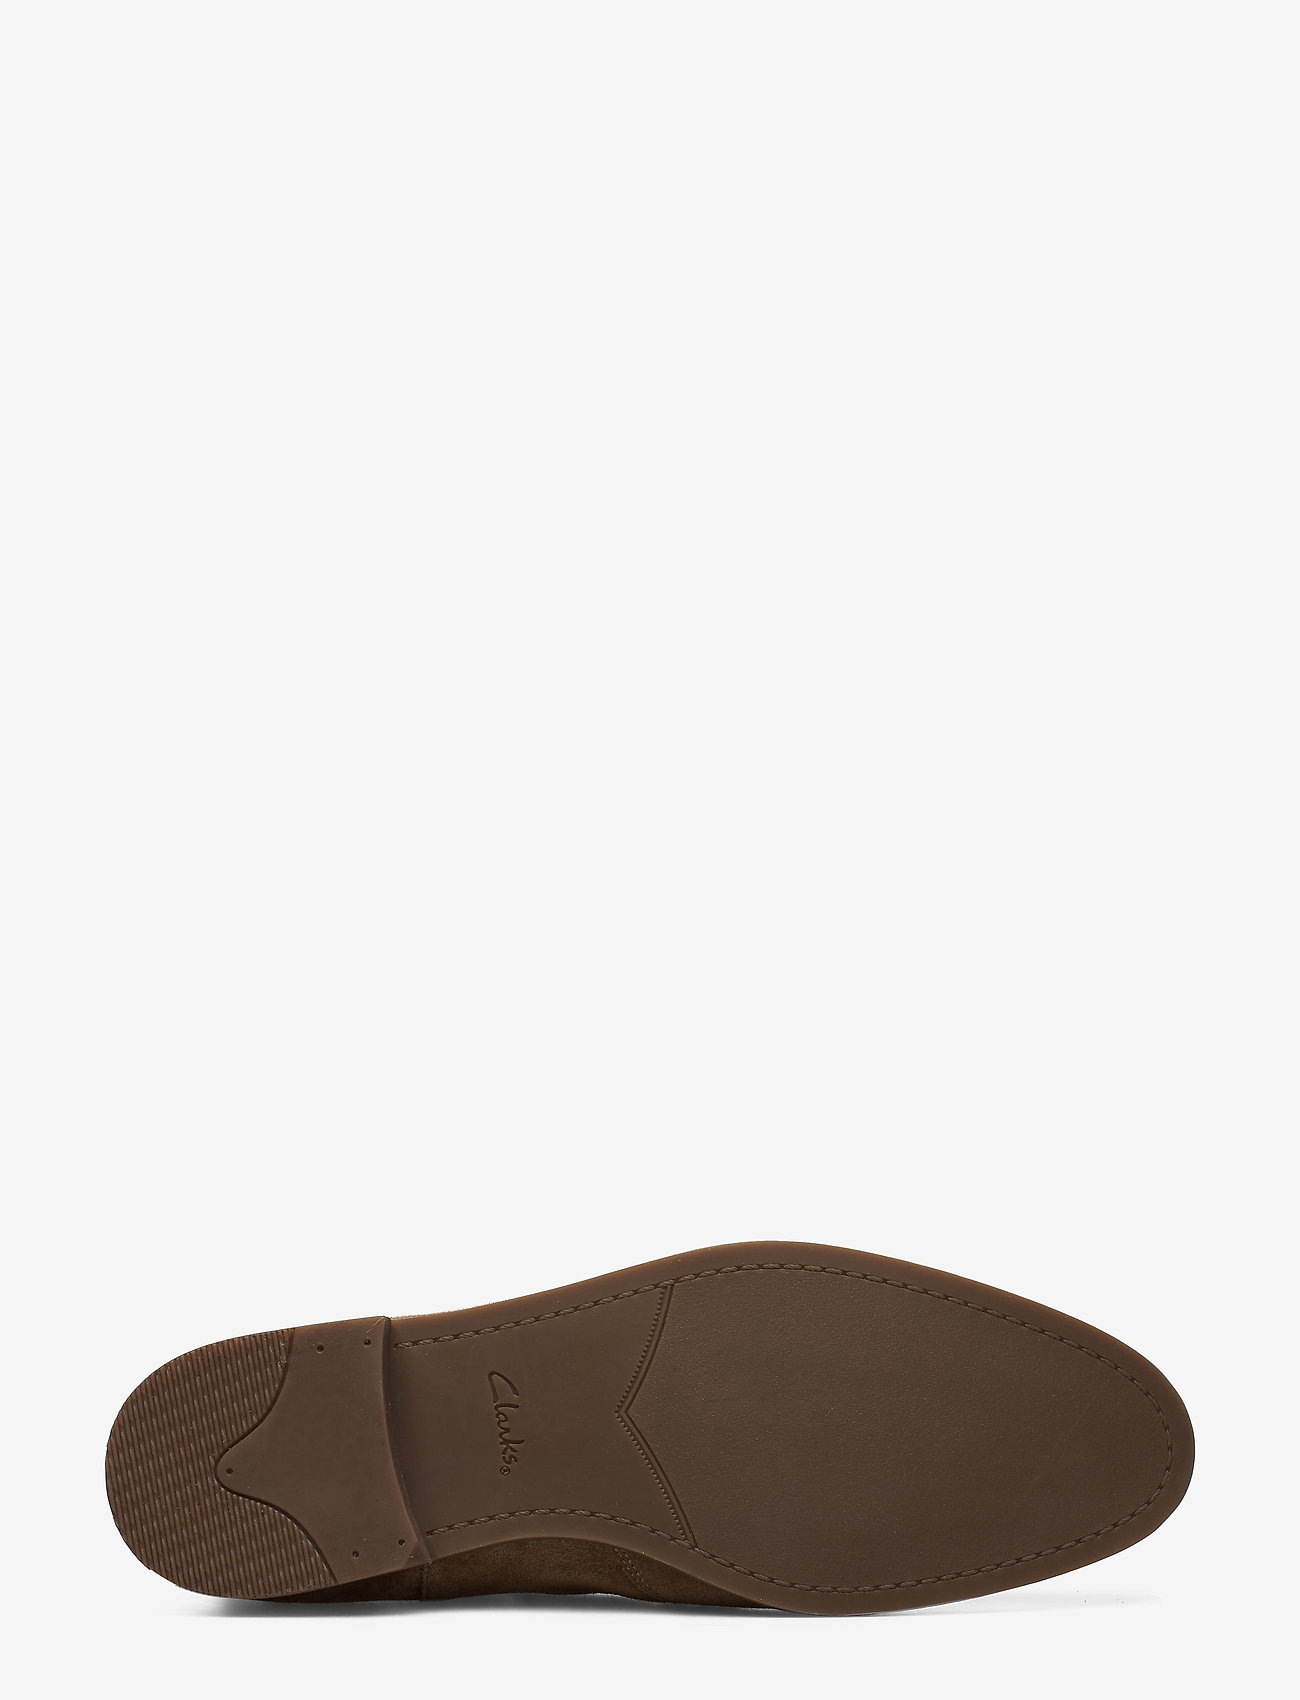 Stanford Top (Dark Sand Suede) - Clarks